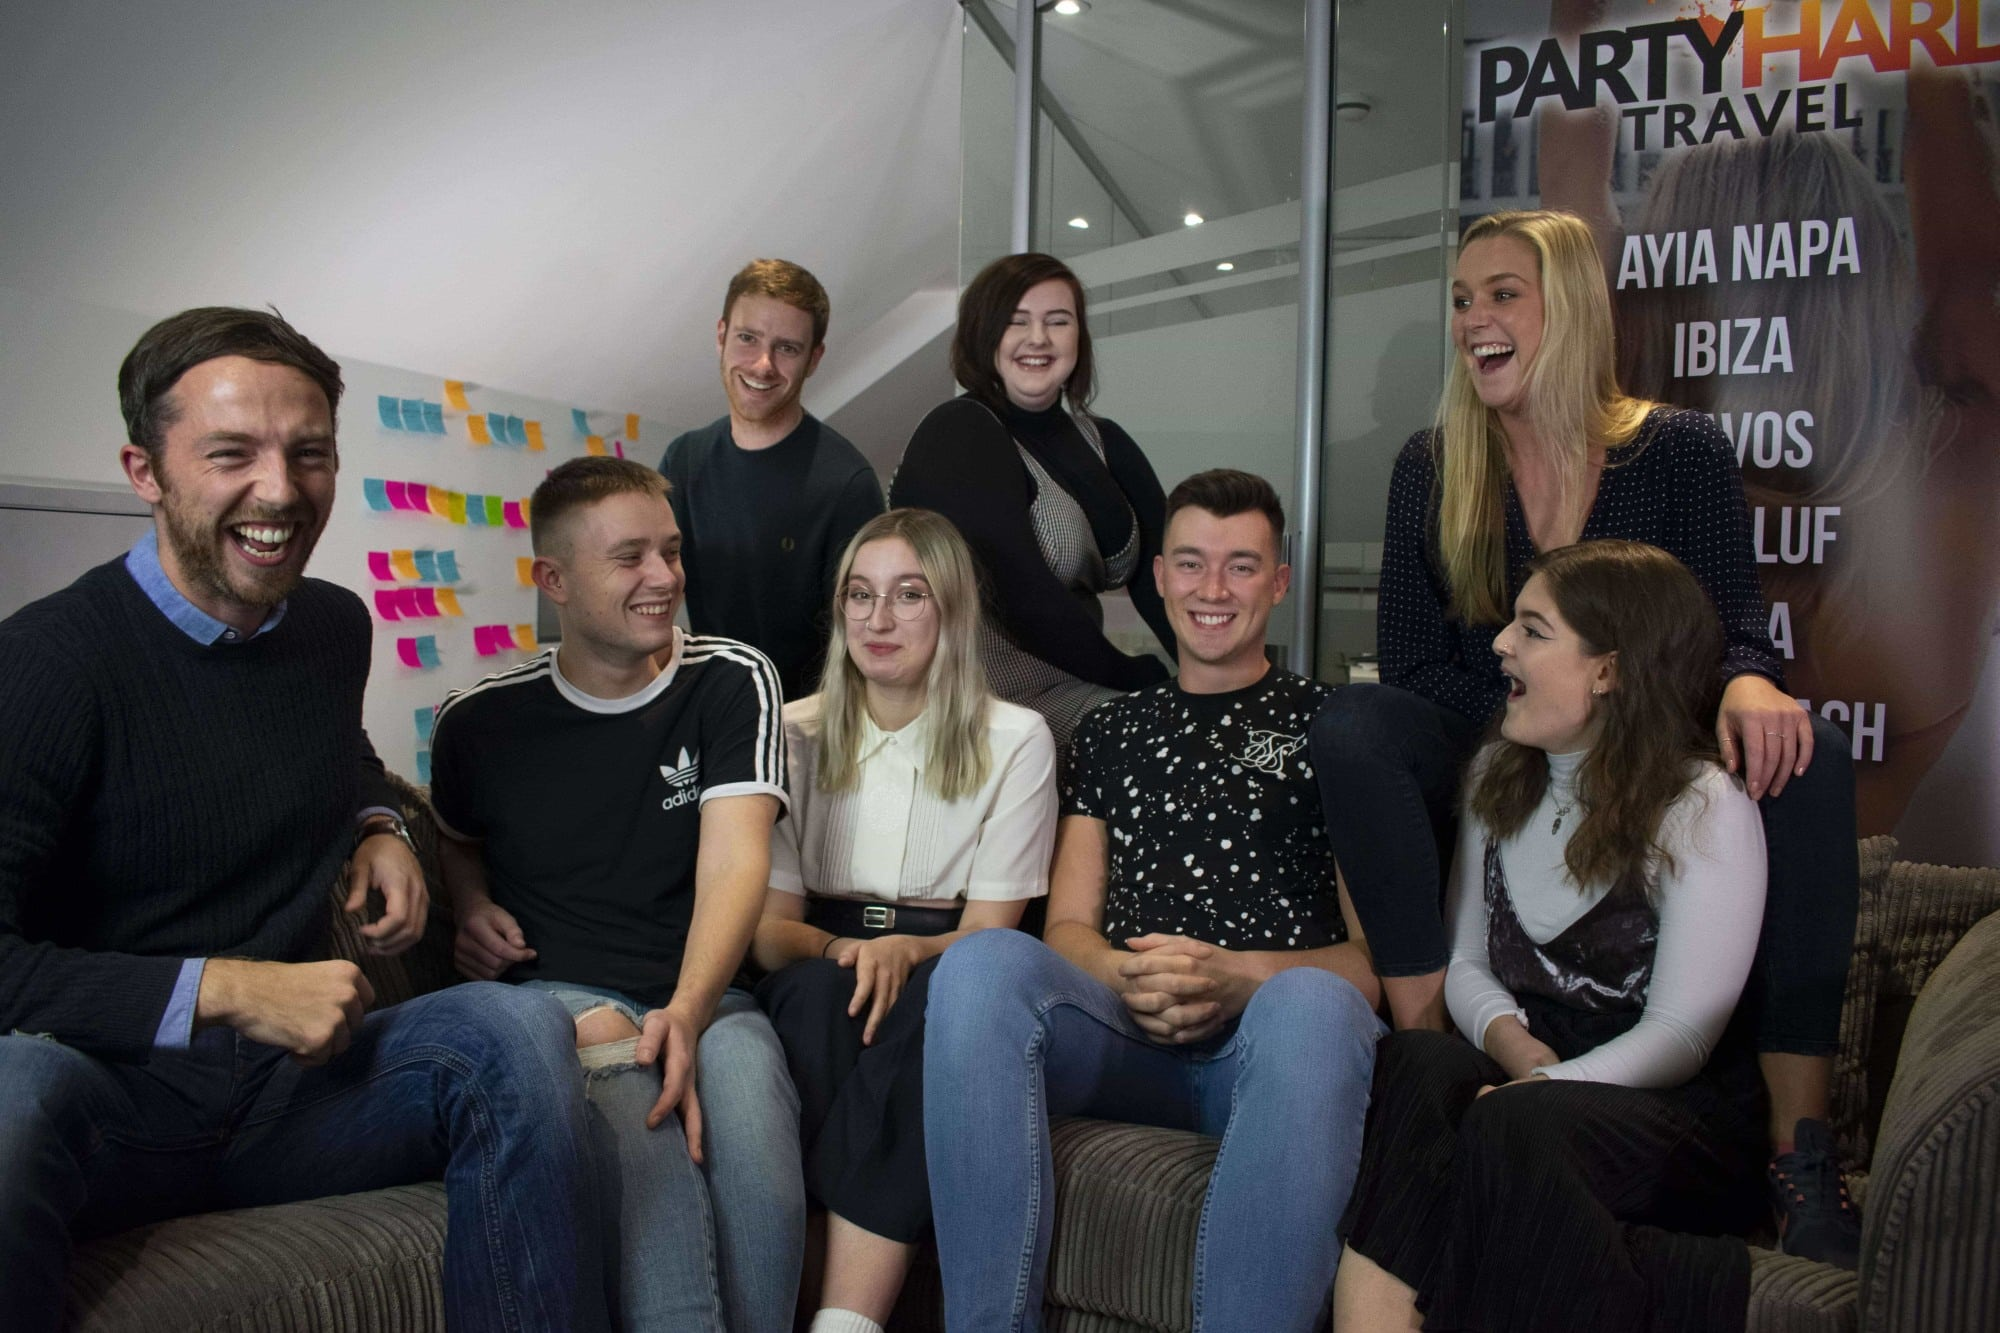 The Party Hard Travel Team, Nathan Cable, Barry Moore, Luke, Sophie, Alex, Mia, Jodie and Lana